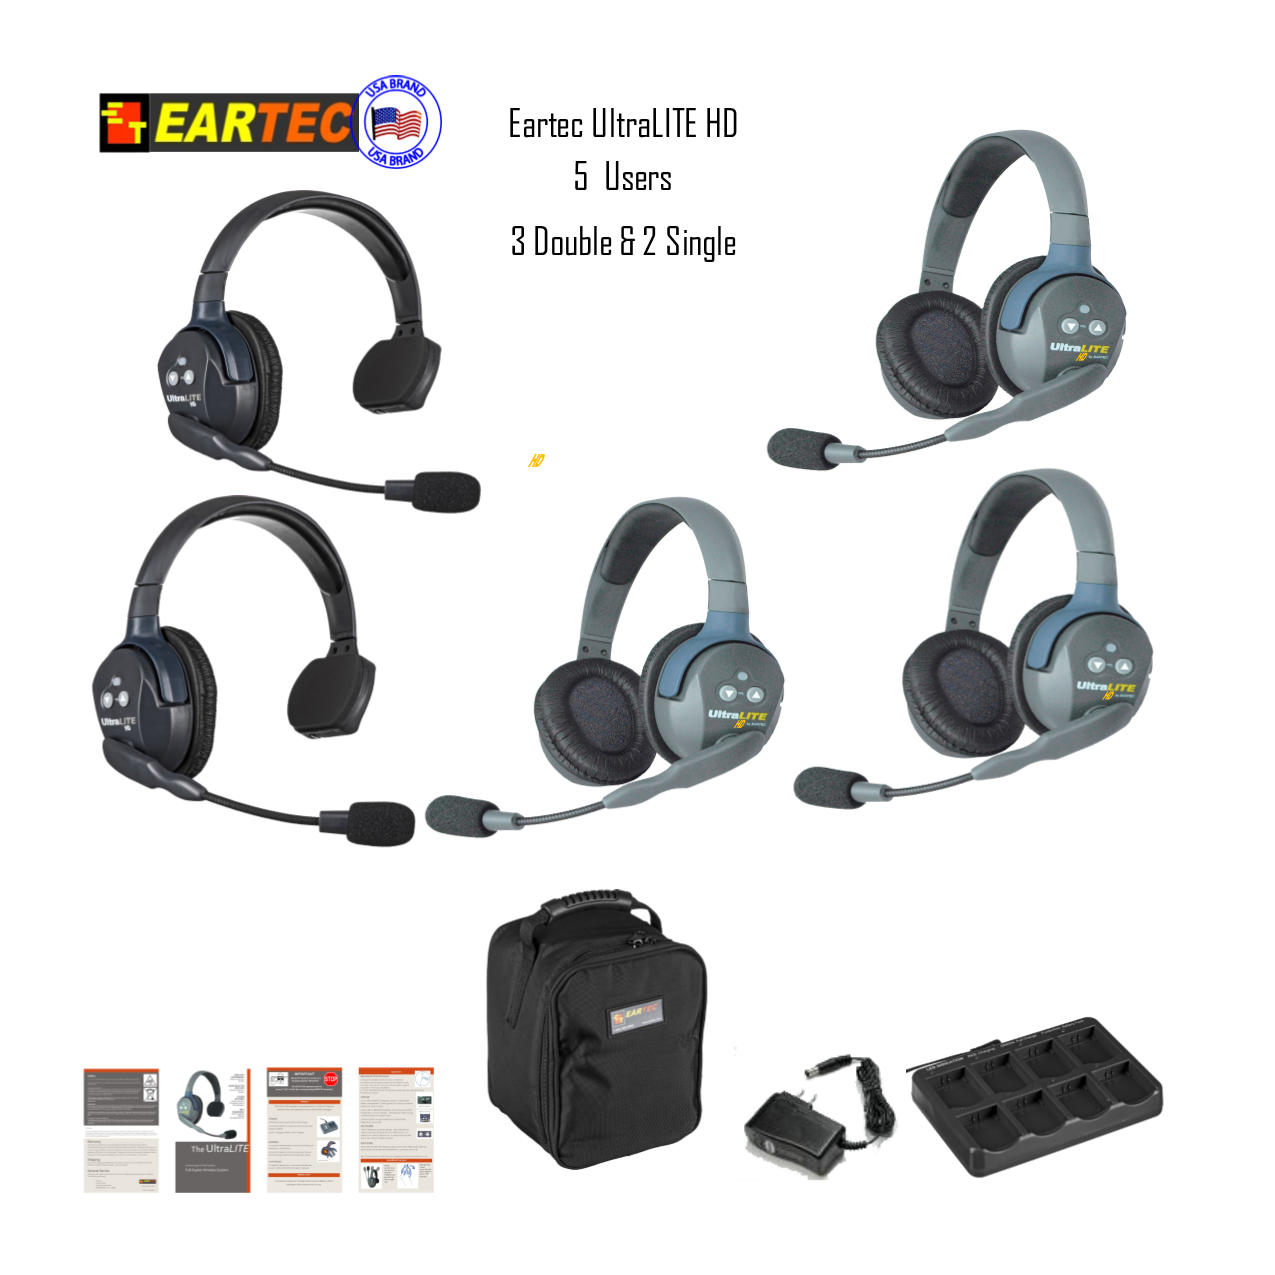 Eartec Ul523 Ultralite 5 Pers. System W/ 2 Single & 3 Double Headsets Intercom Systems Eartec